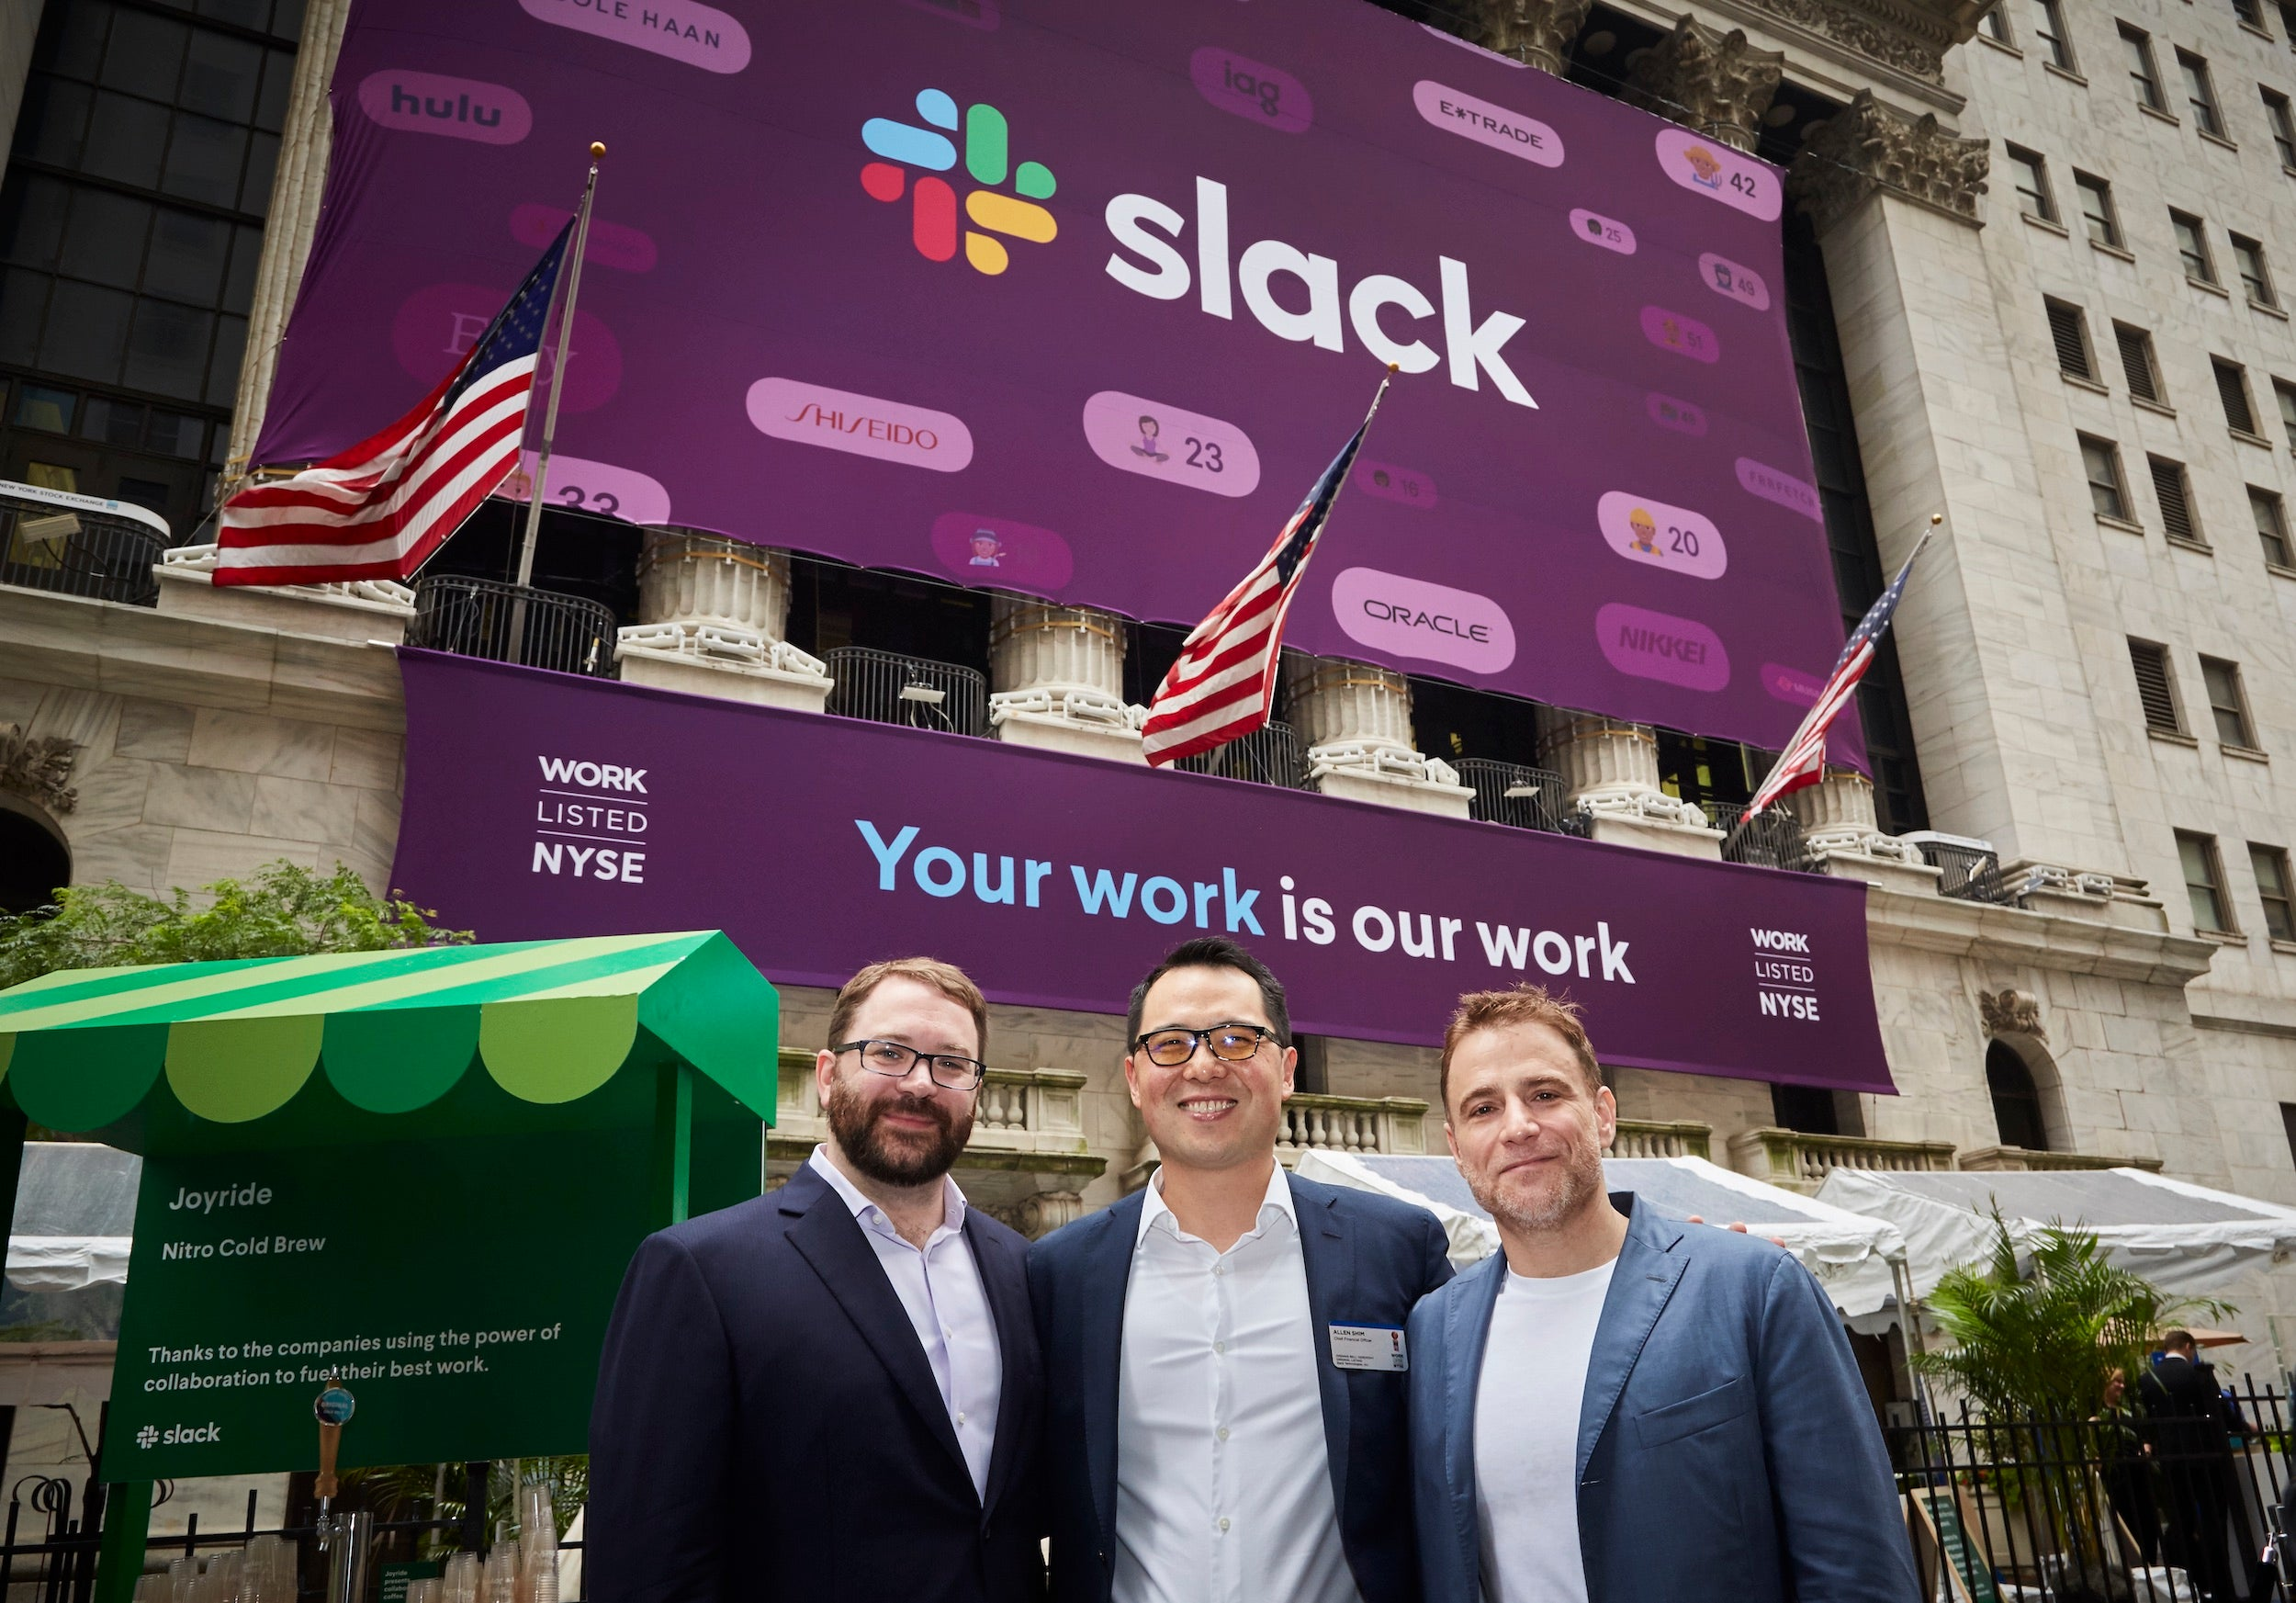 5 Metrics Behind Slack's Soaring Stock Price | The Motley Fool